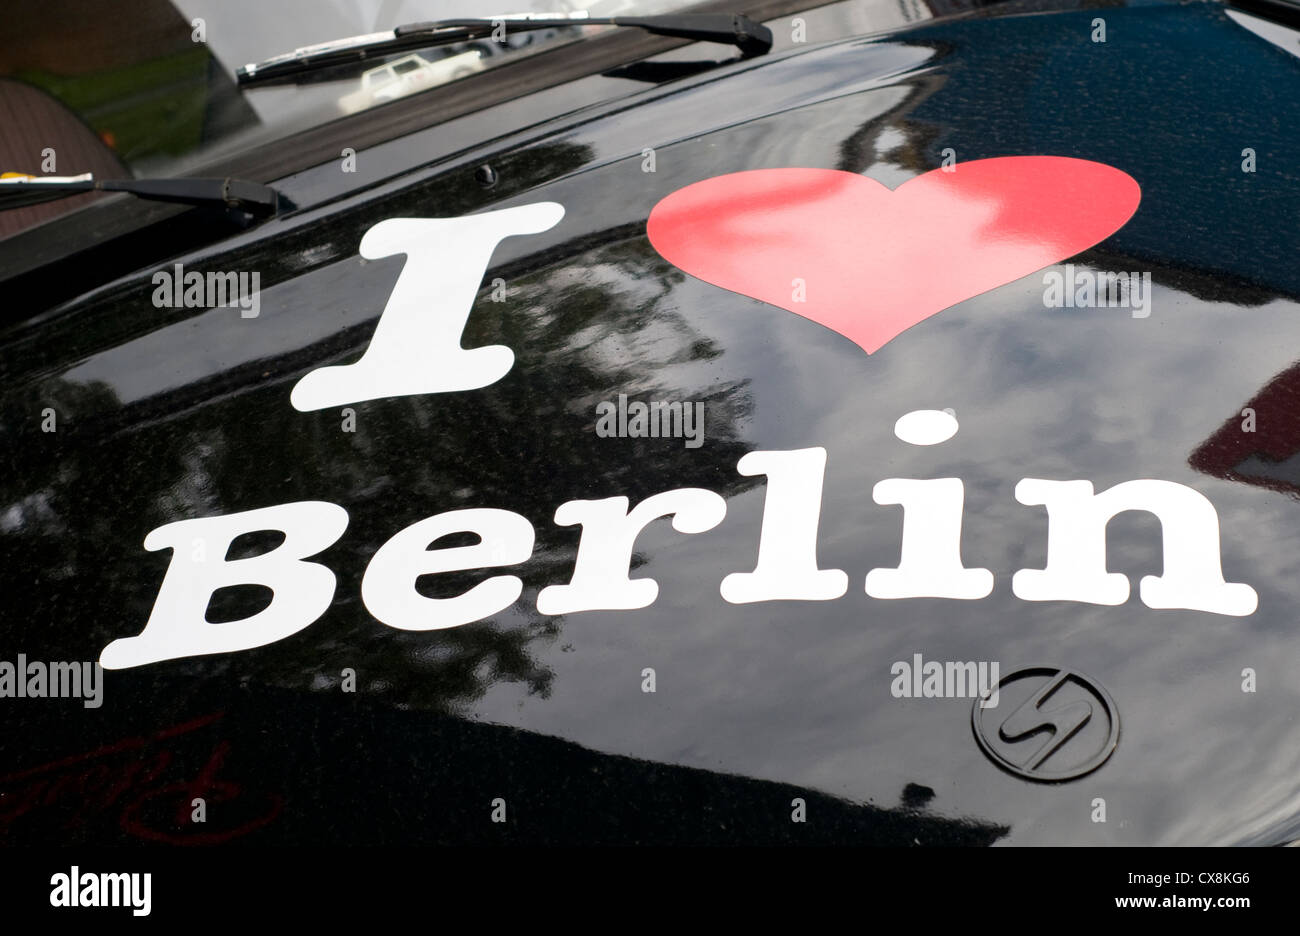 Detail of I love Berlin artwork on the bonnet of an old Trabant car - Stock Image